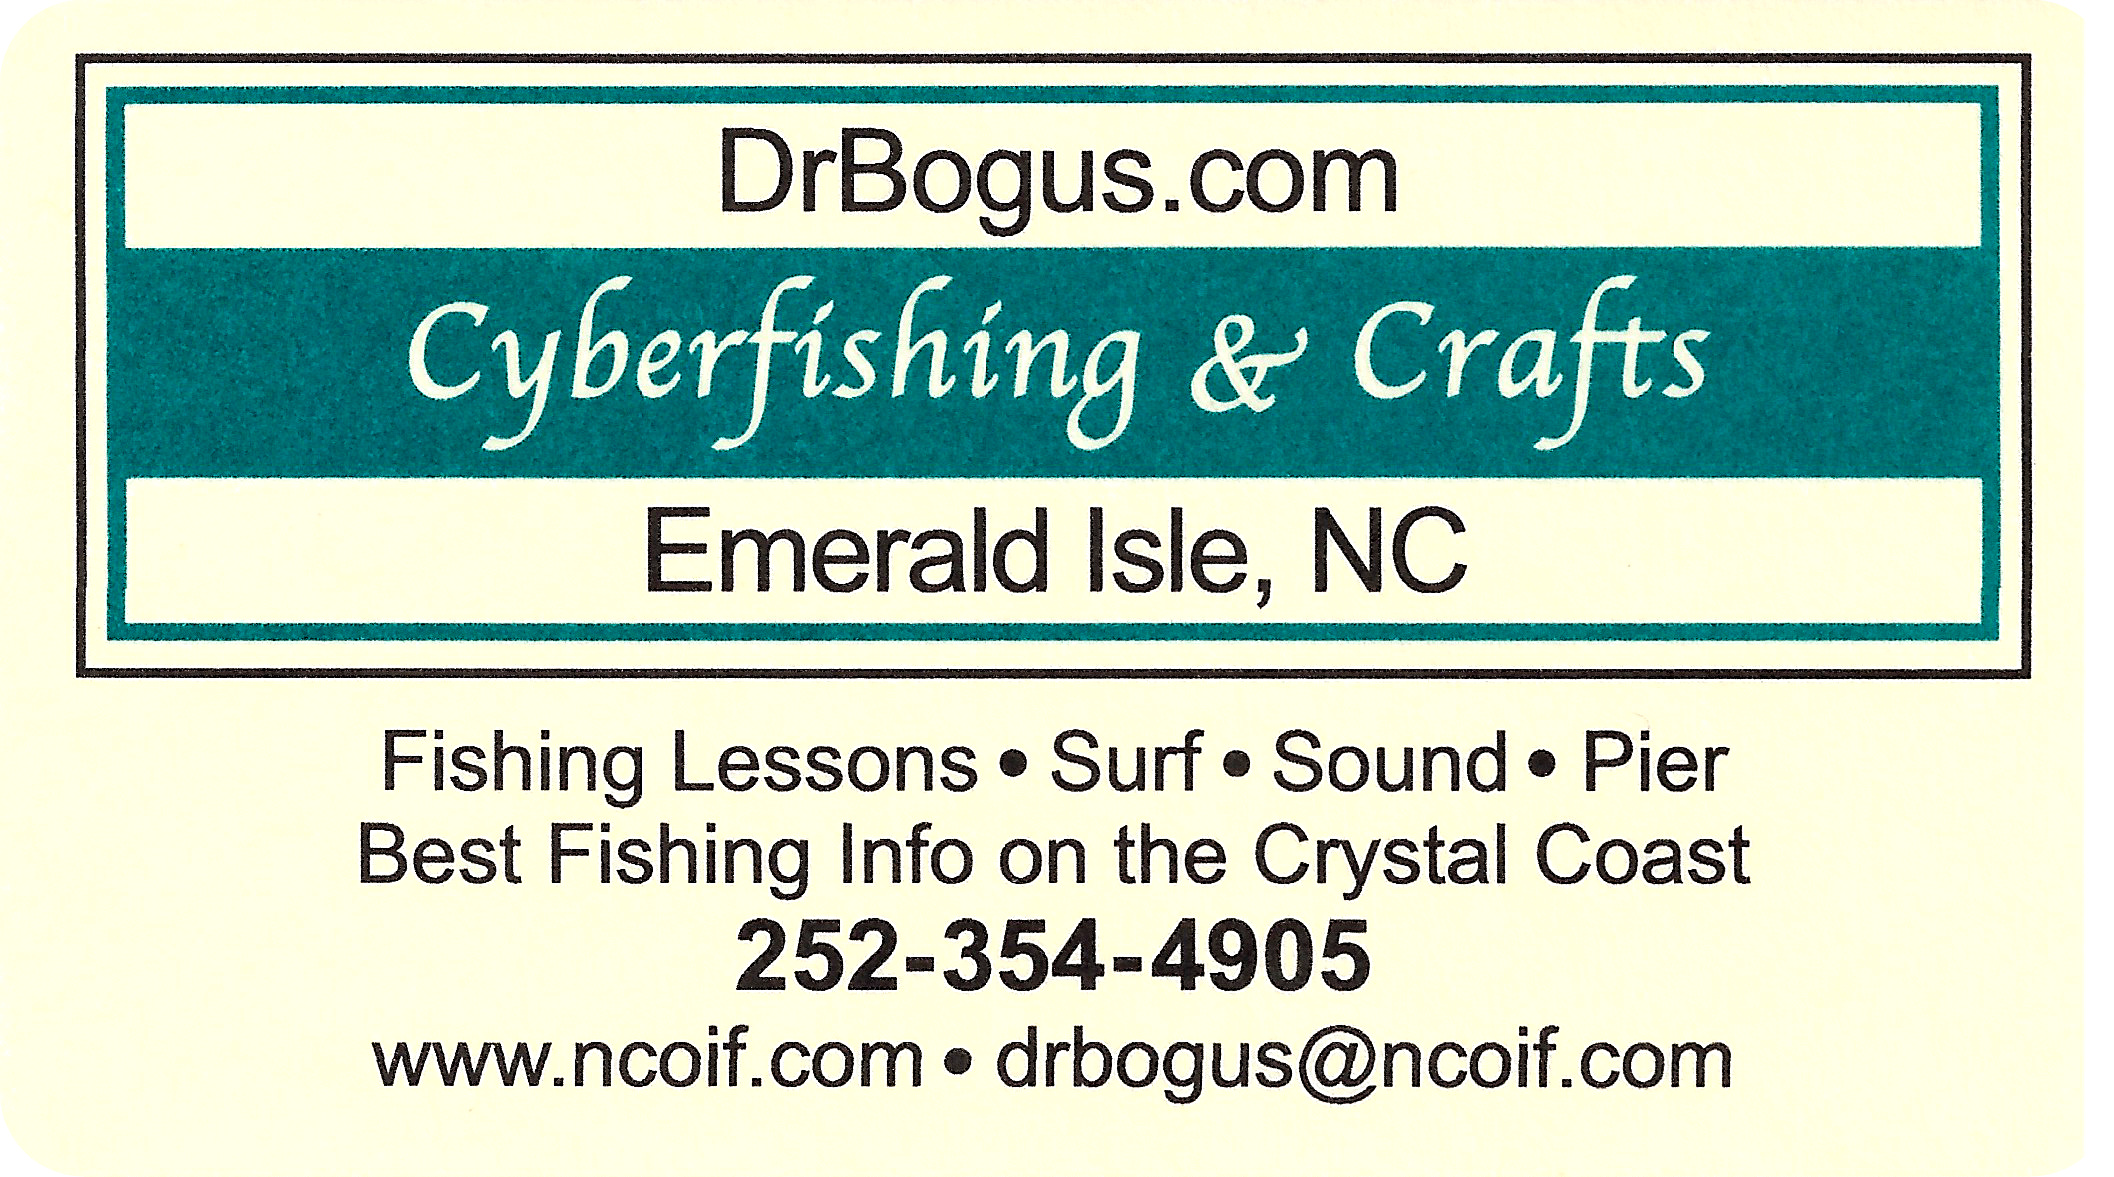 Dr. Bogus.com (Fishing Information & Instruction)